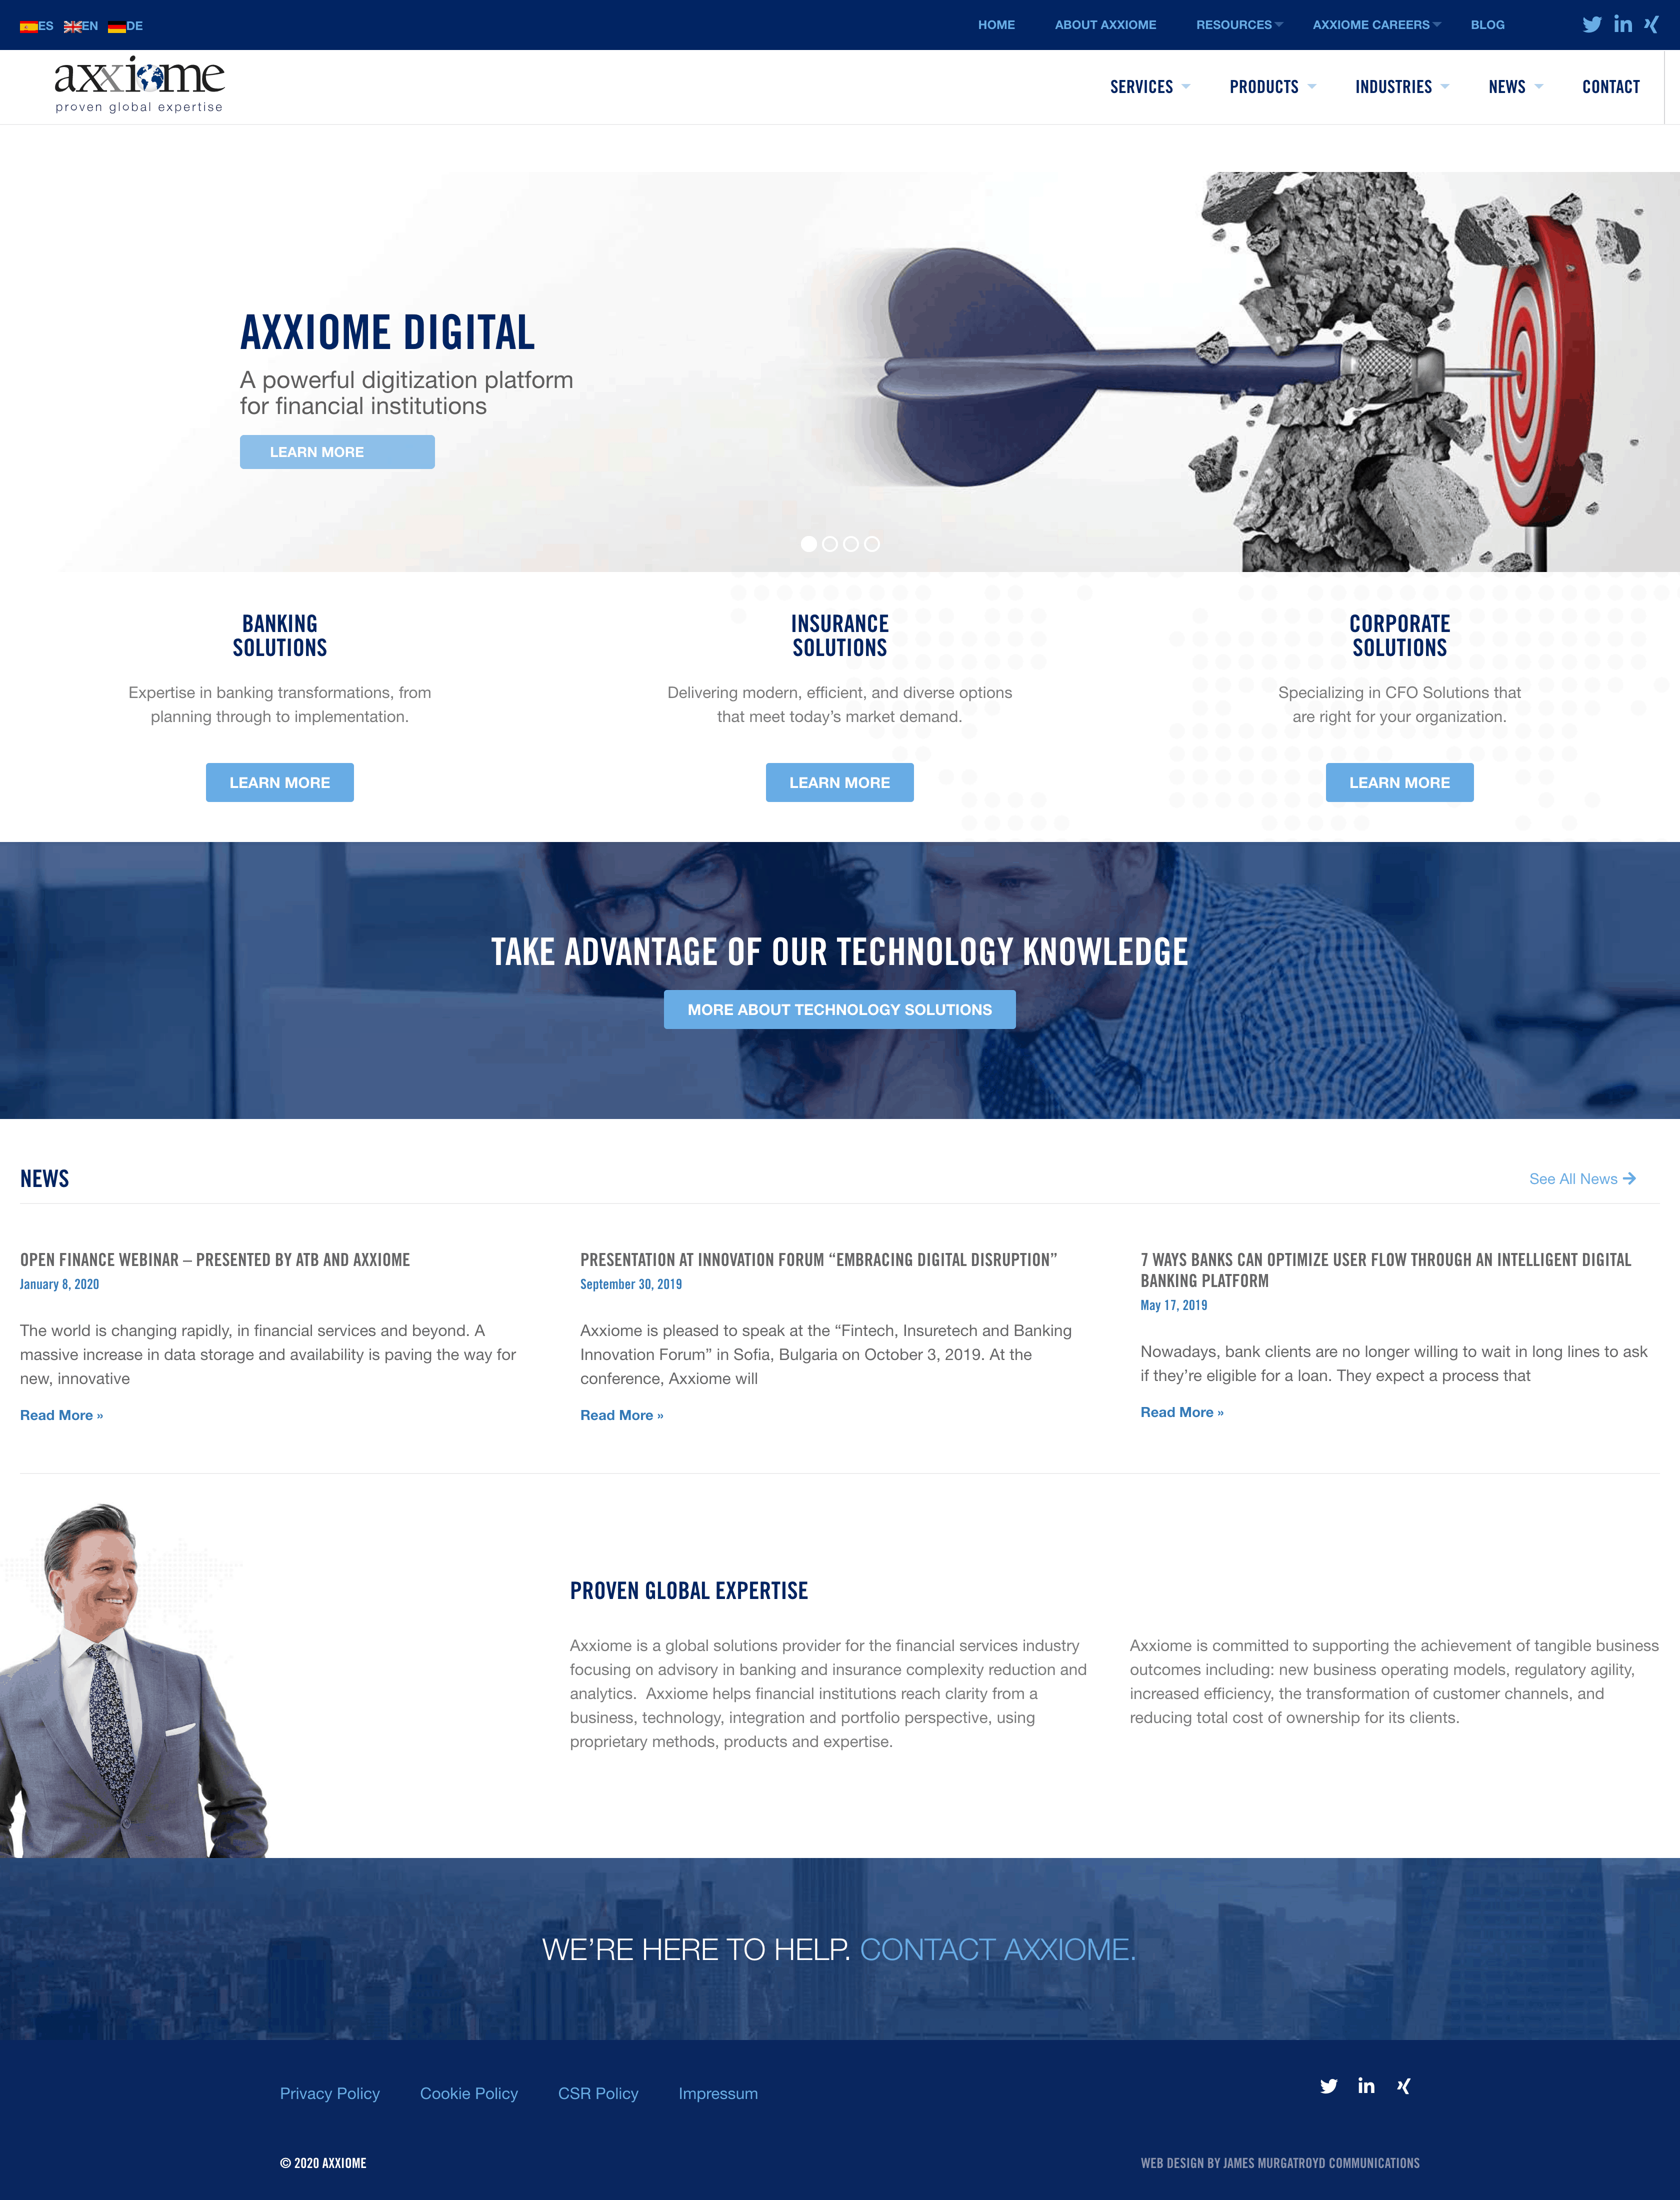 Axxiome Website Home Page Design